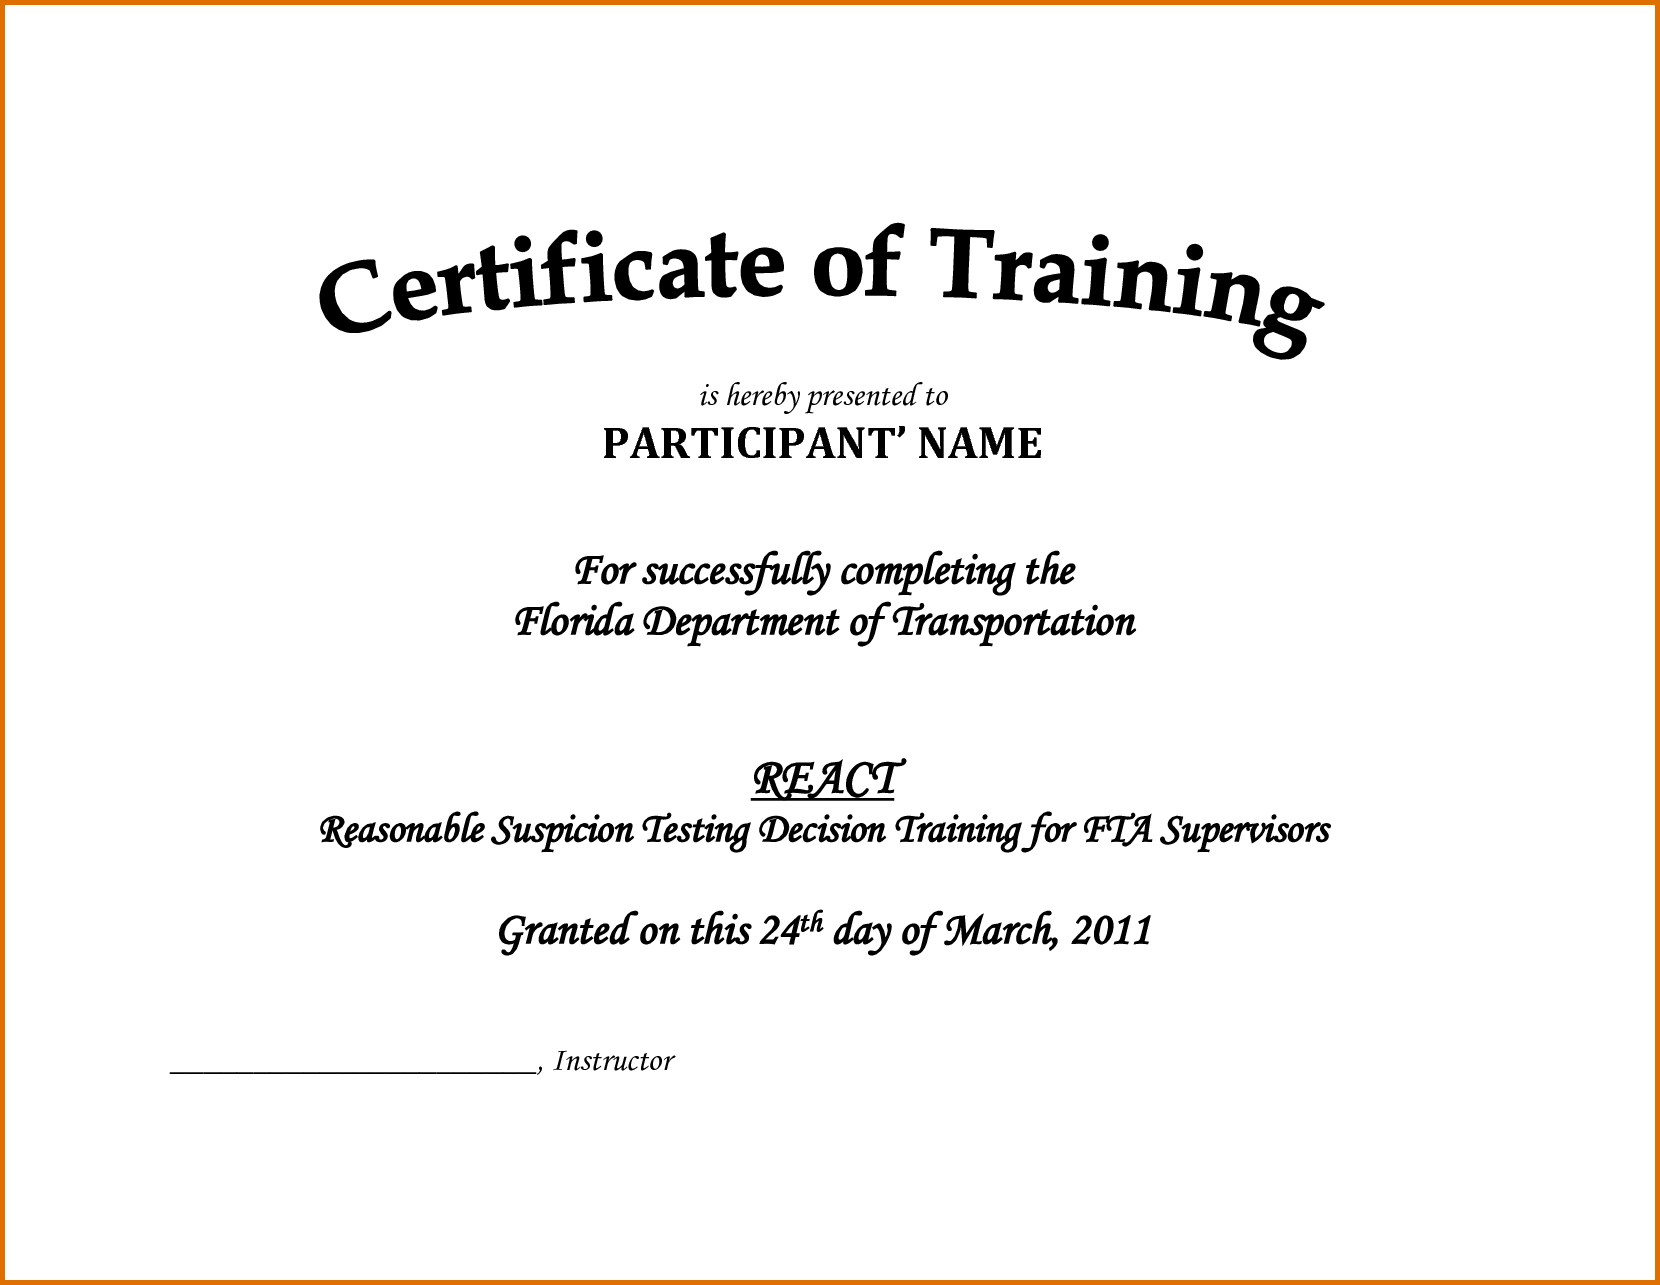 Doc16601285 blank certificate of attendance free printable gift doc611472 certificate format in word free templates for training certificate template doc army certificate of achievement template money lending agreement yadclub Choice Image